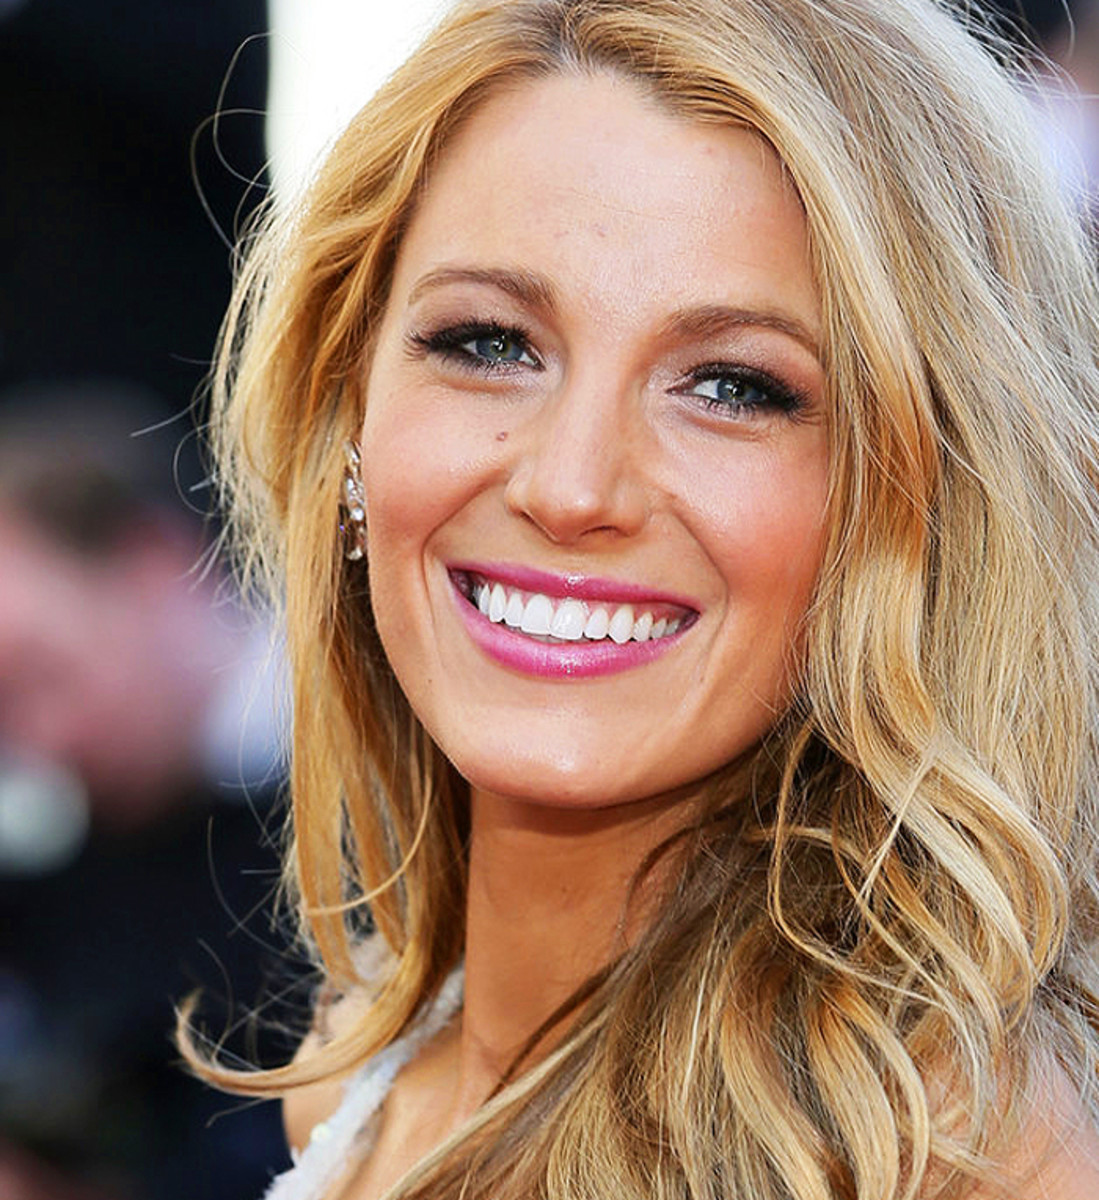 Wallpaper Geek Girl Blake Lively Totally Wins The Red Carpet Smile Award No